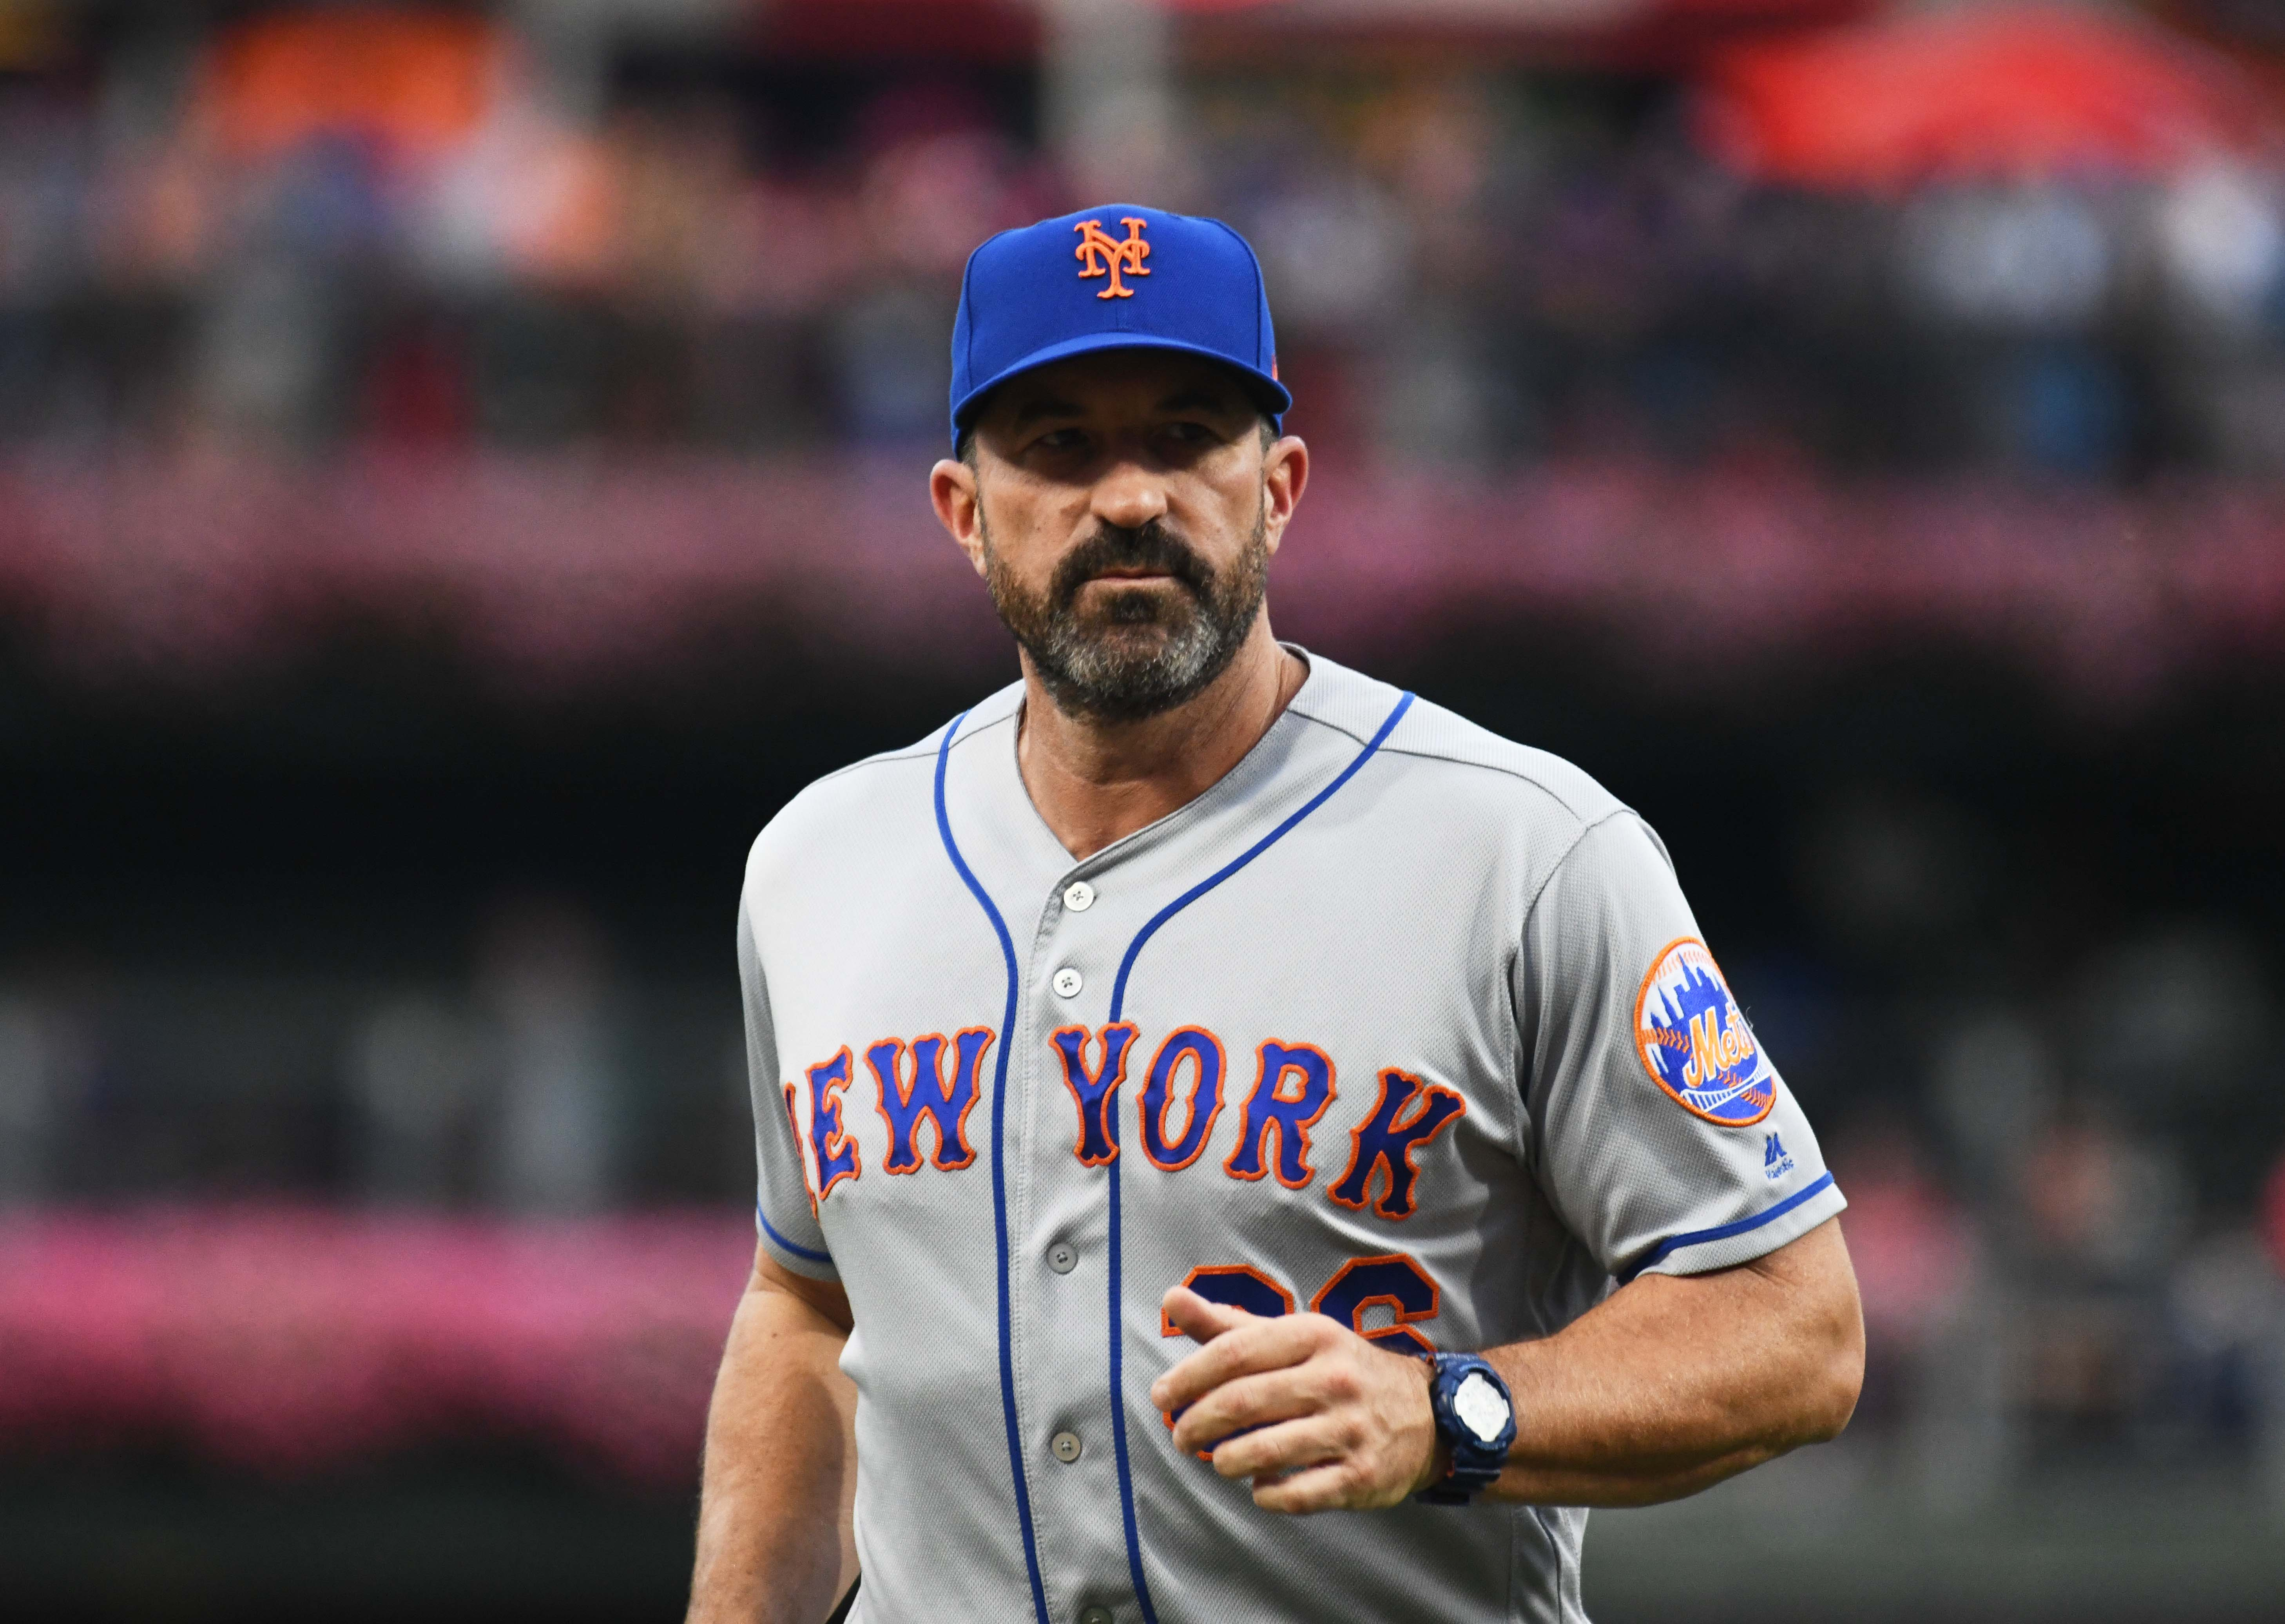 Mickey Callaway completely botched the end of last night's debacle